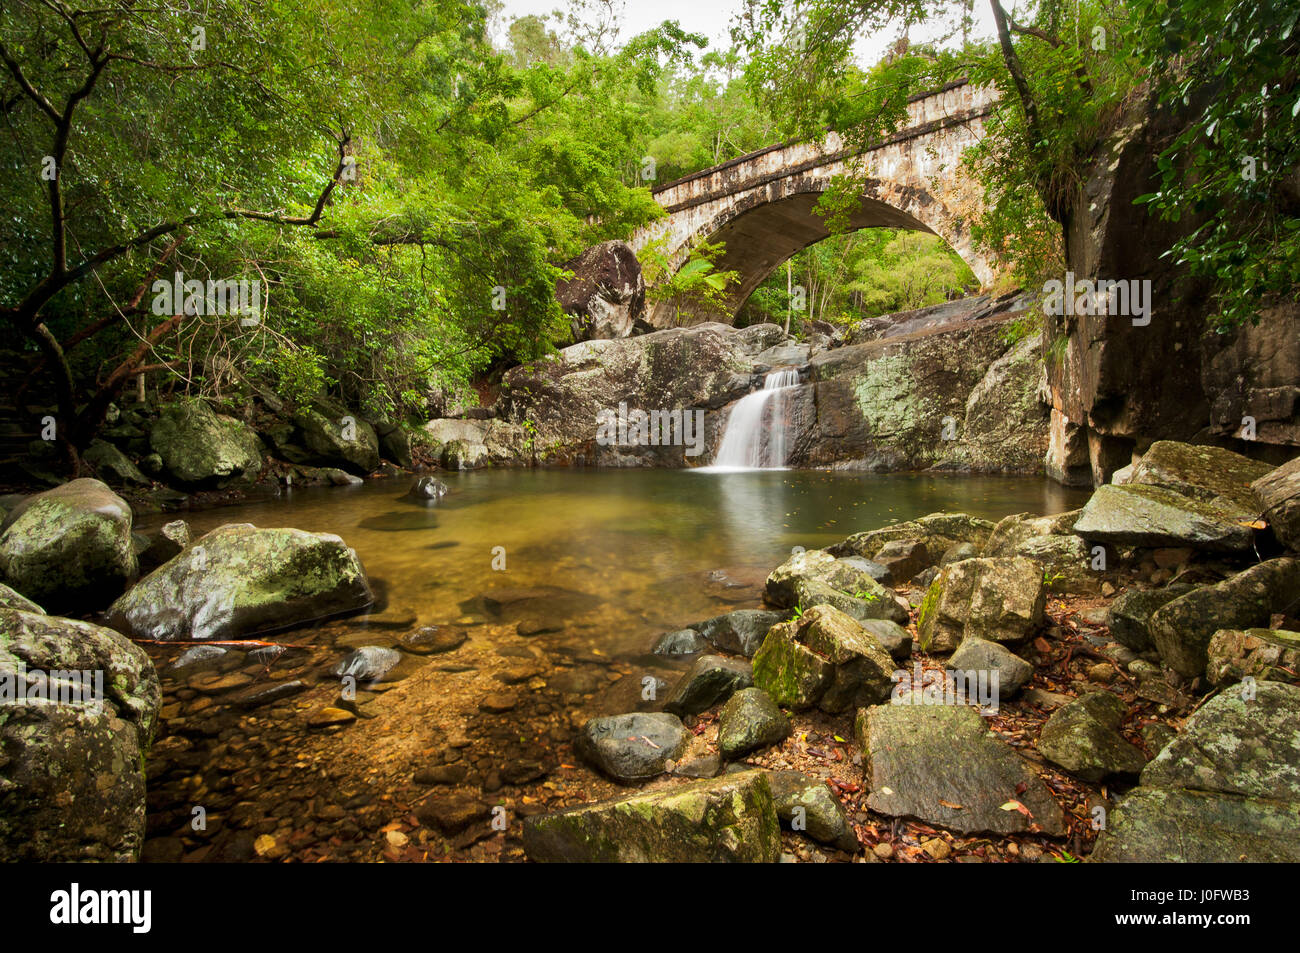 Peu de Crystal Creek Bridge dans le Paluma Range. Photo Stock